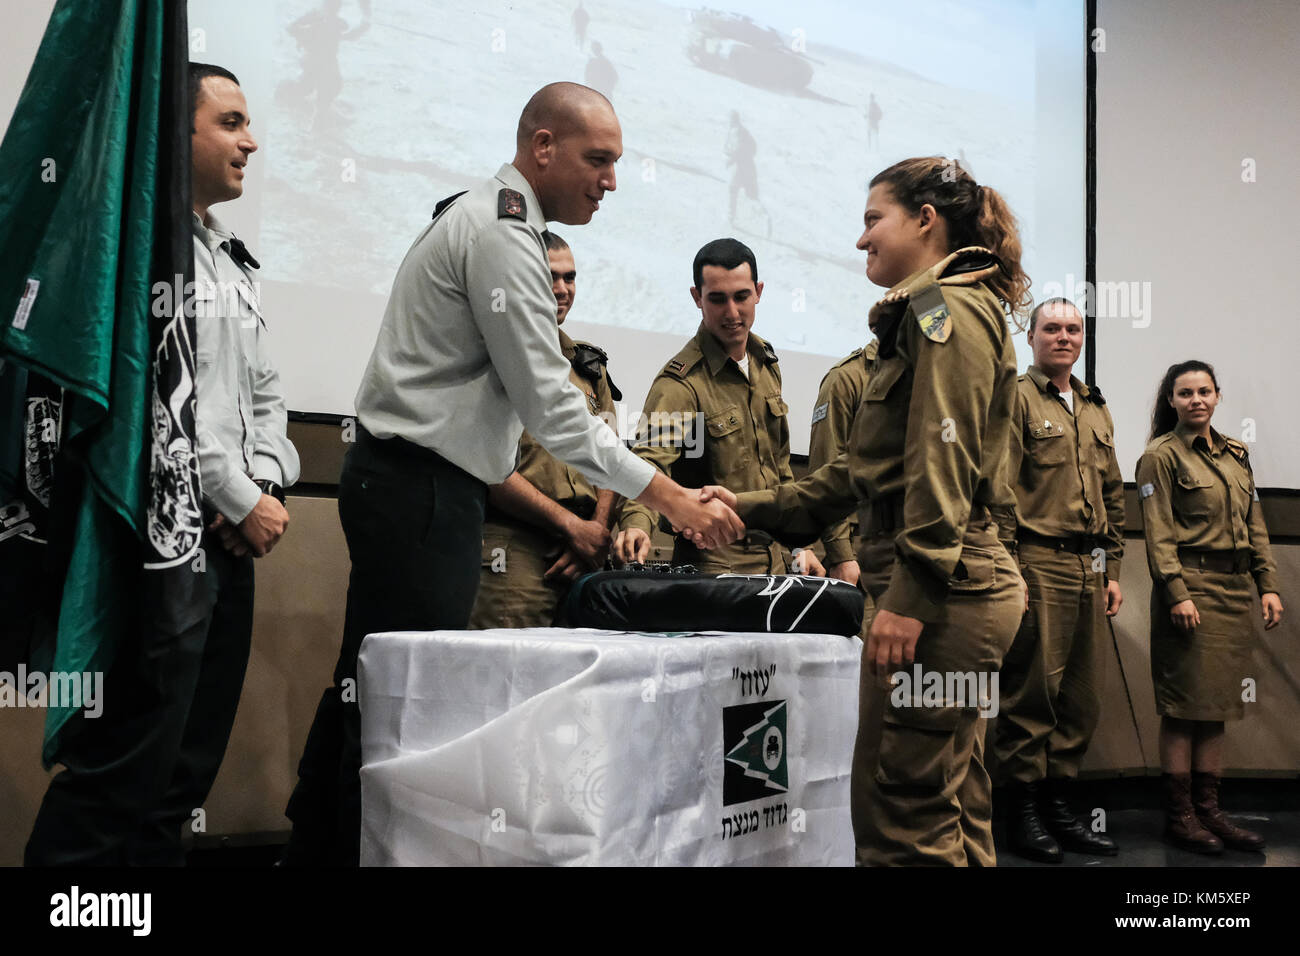 Image result for idf female tank soldier